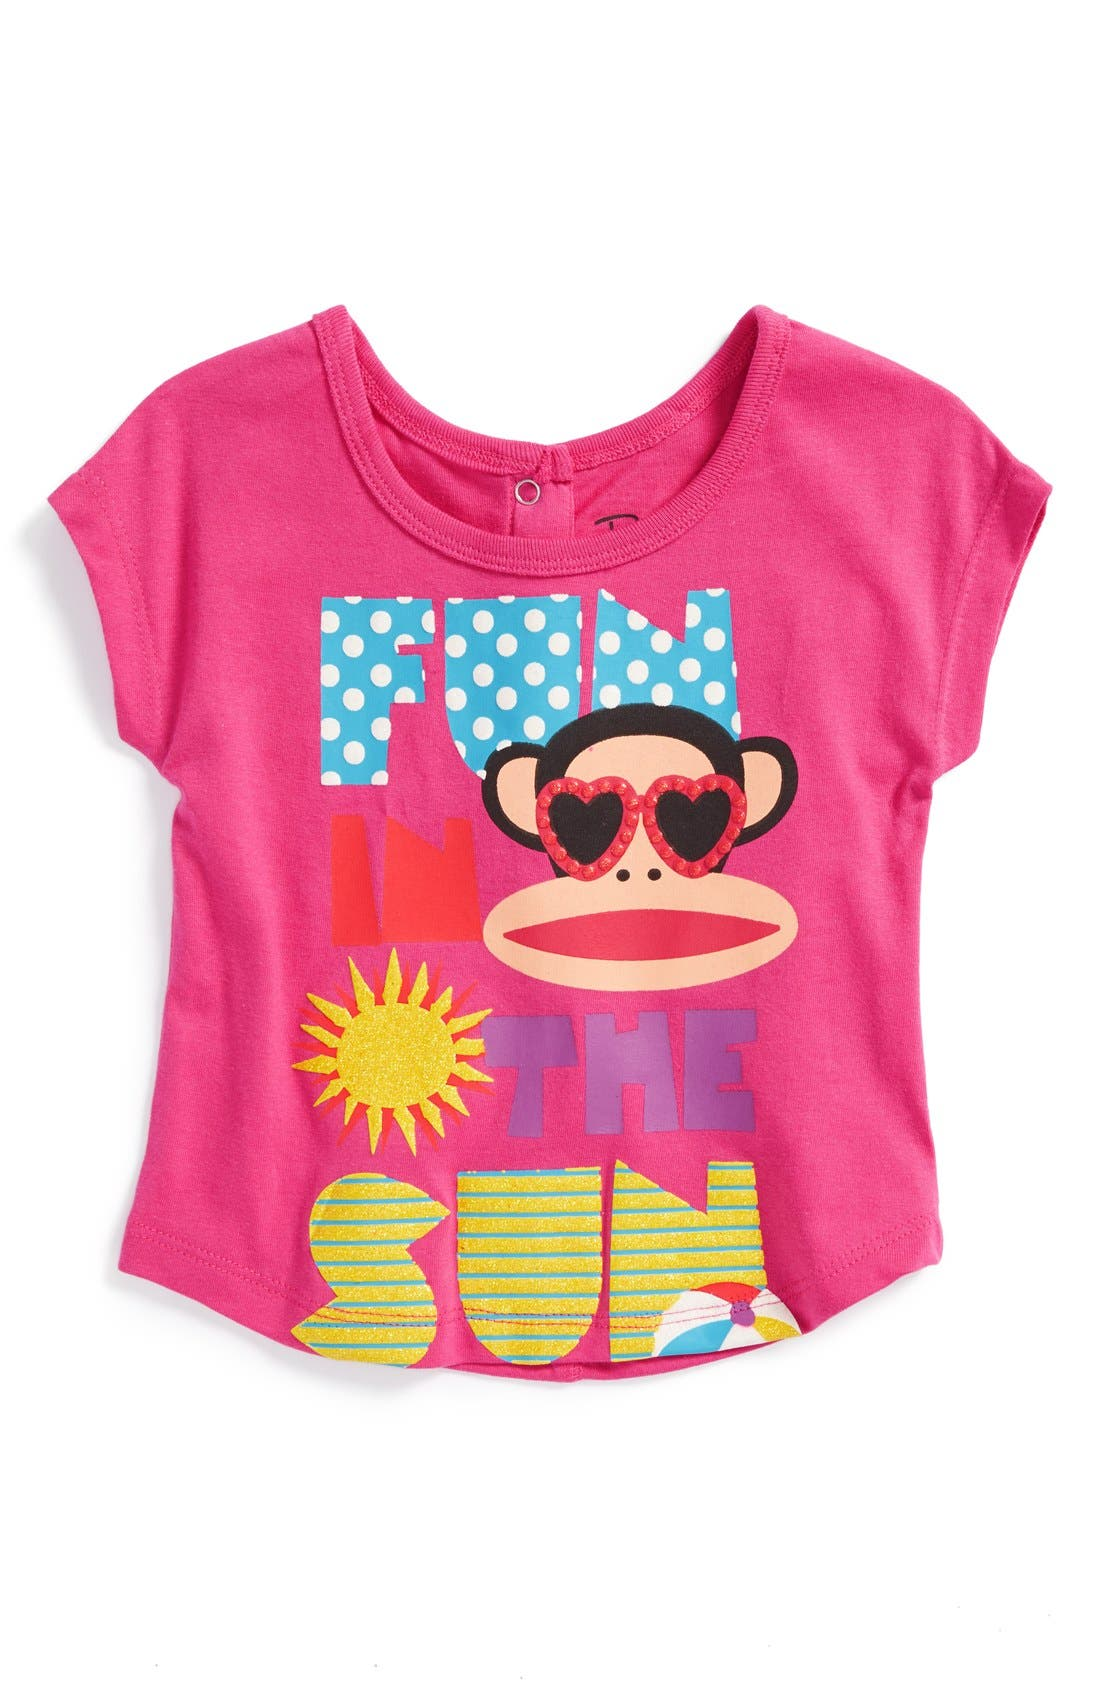 Main Image - Paul Frank 'Fun in the Sun' Graphic Tee (Baby Girls)